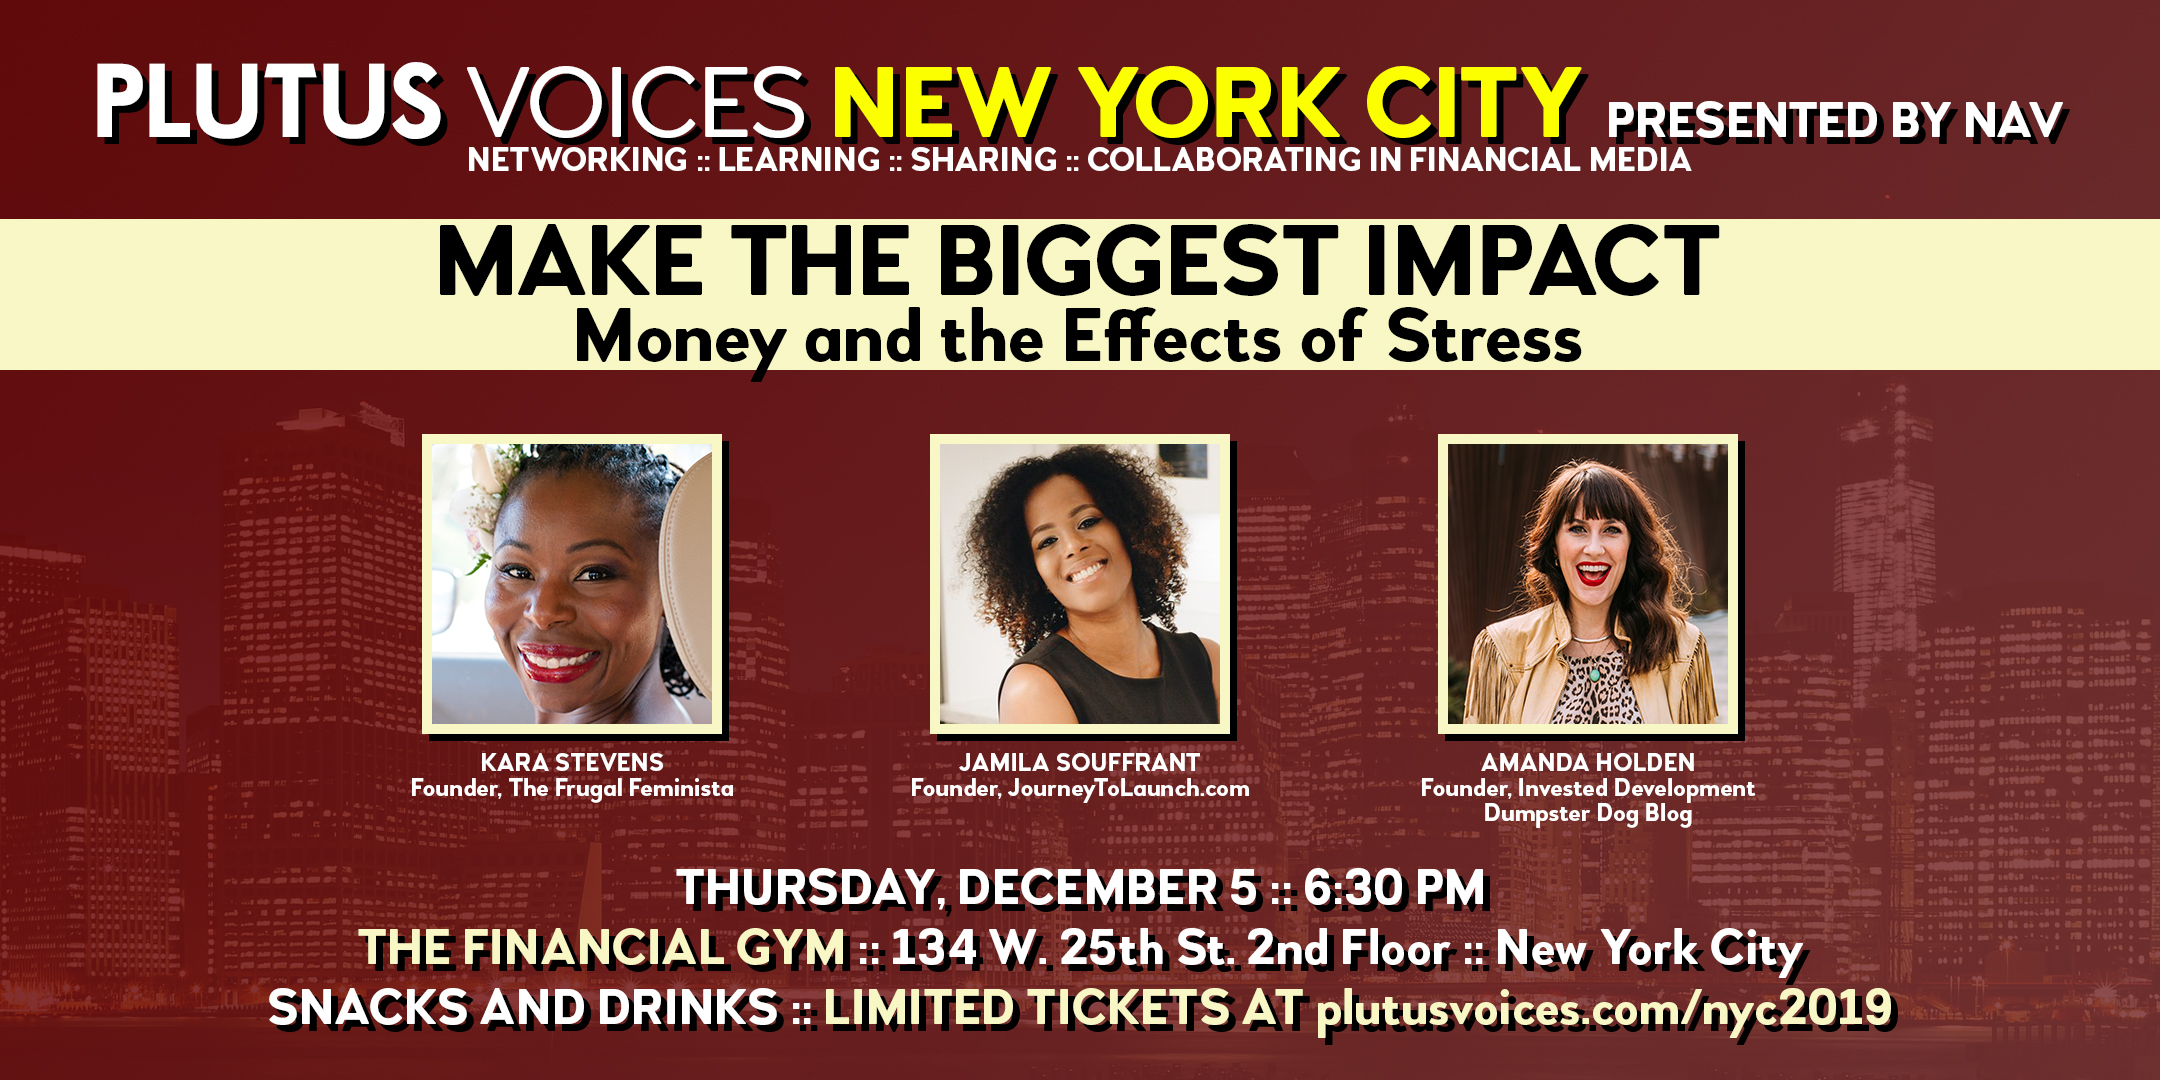 Plutus Voices Announced Speakers for NYC